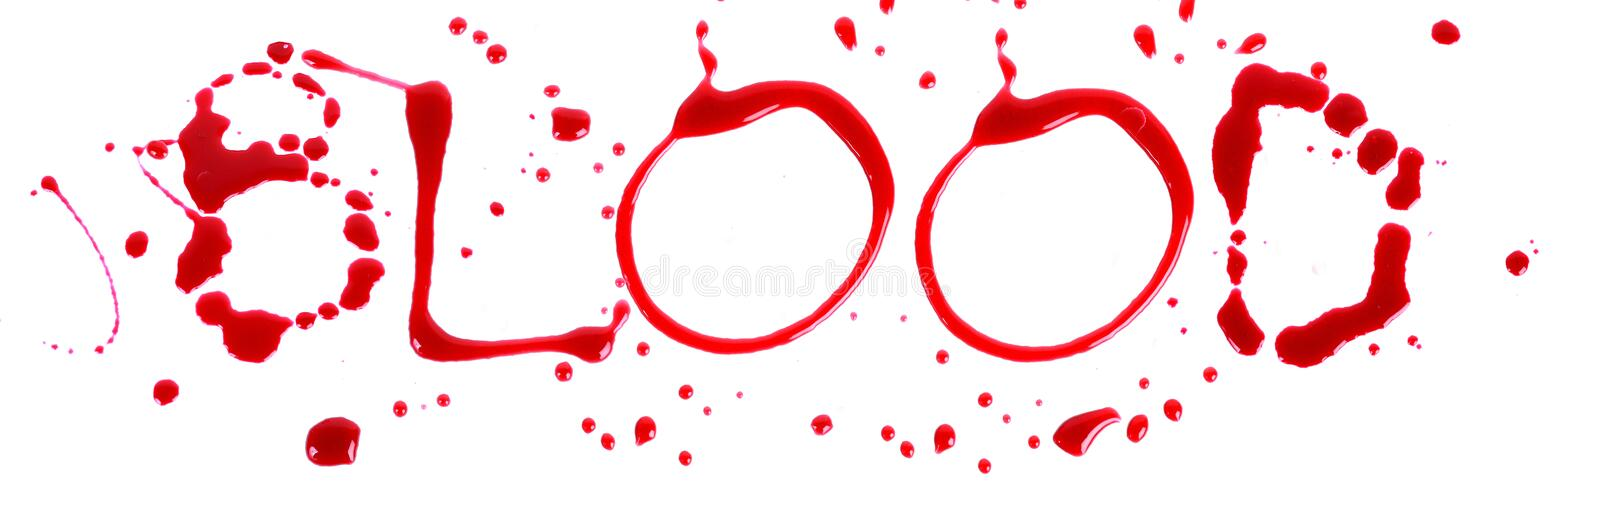 Bloody letters blood royalty free stock image